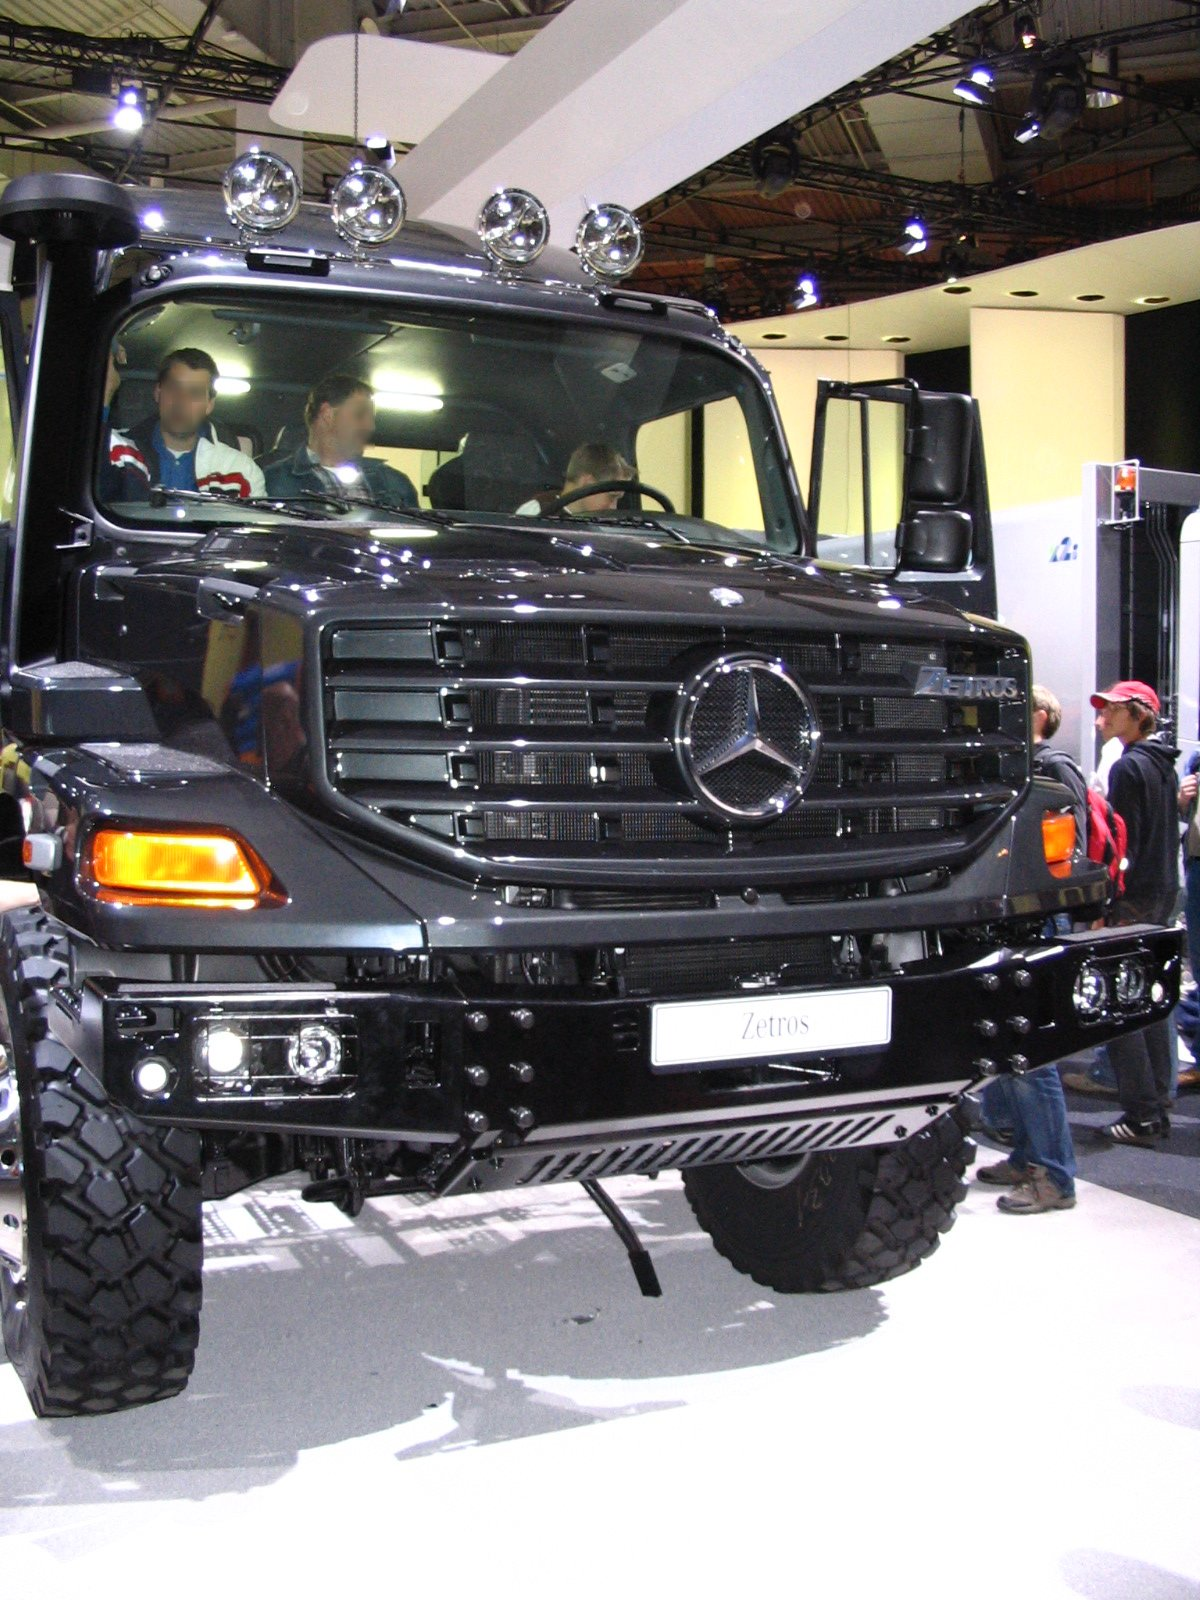 Mercedes-benz zetros photo - 4